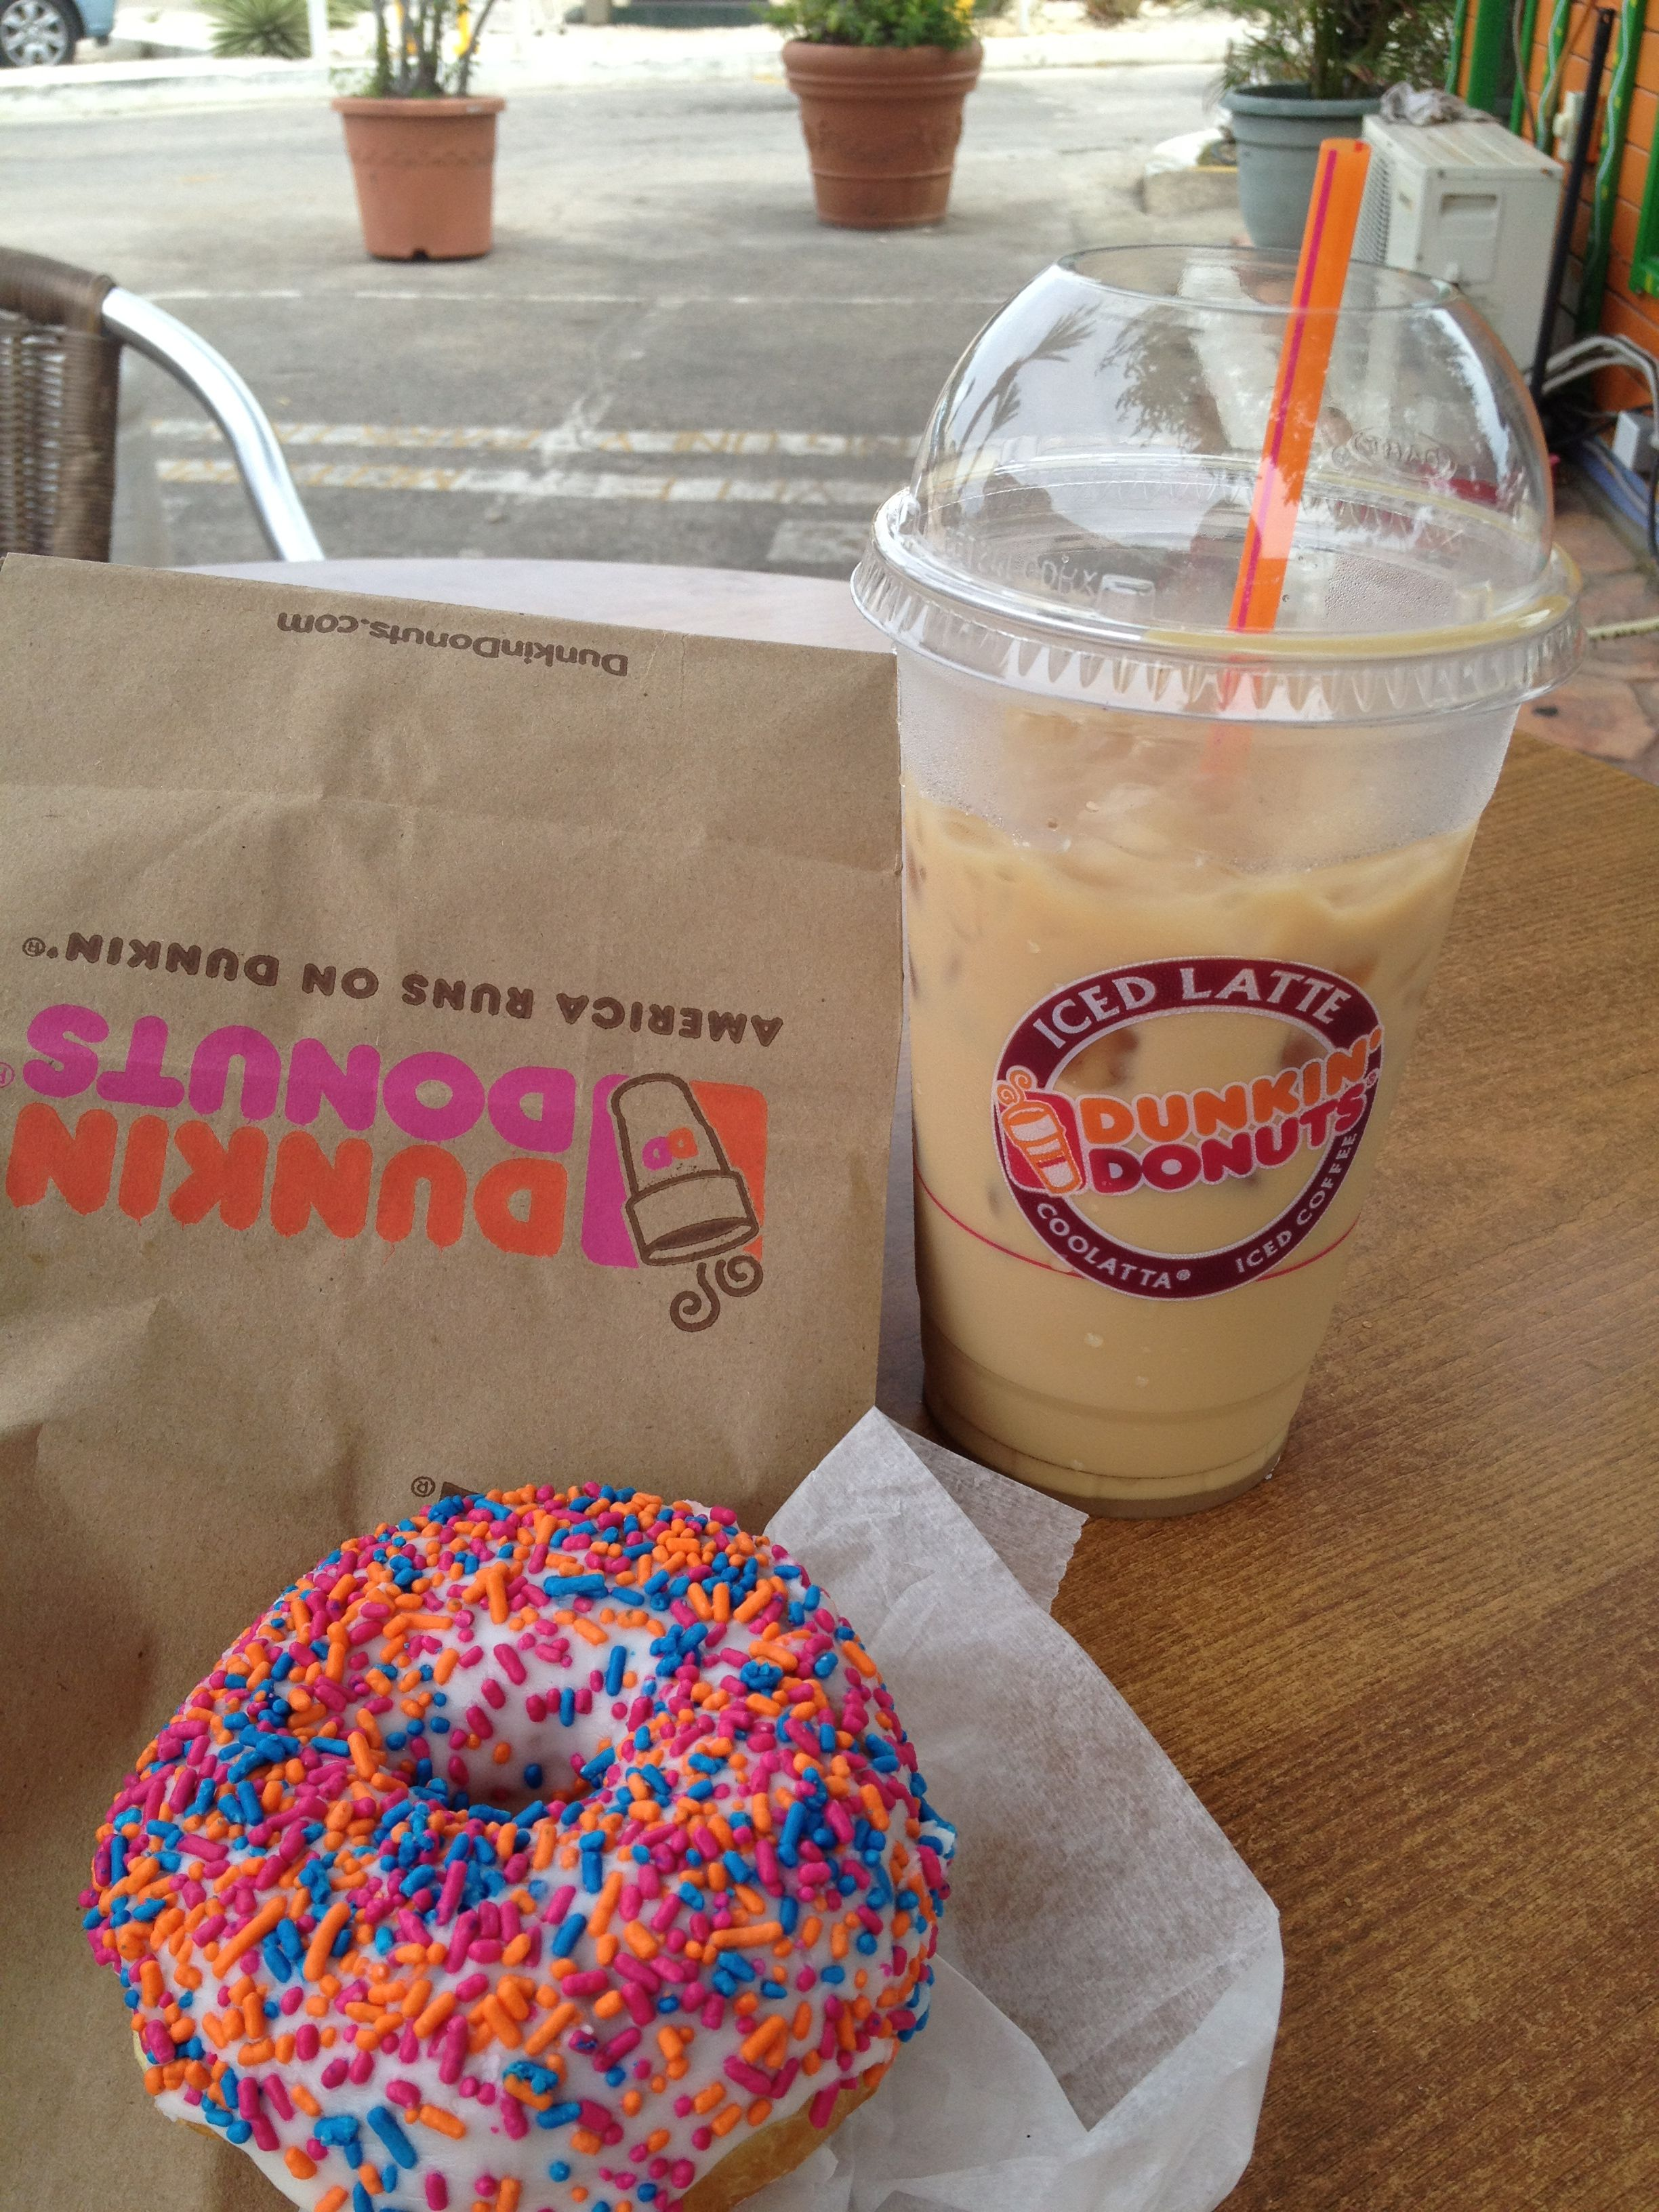 Dunkin donuts hazelnut flavored ice coffee and springle